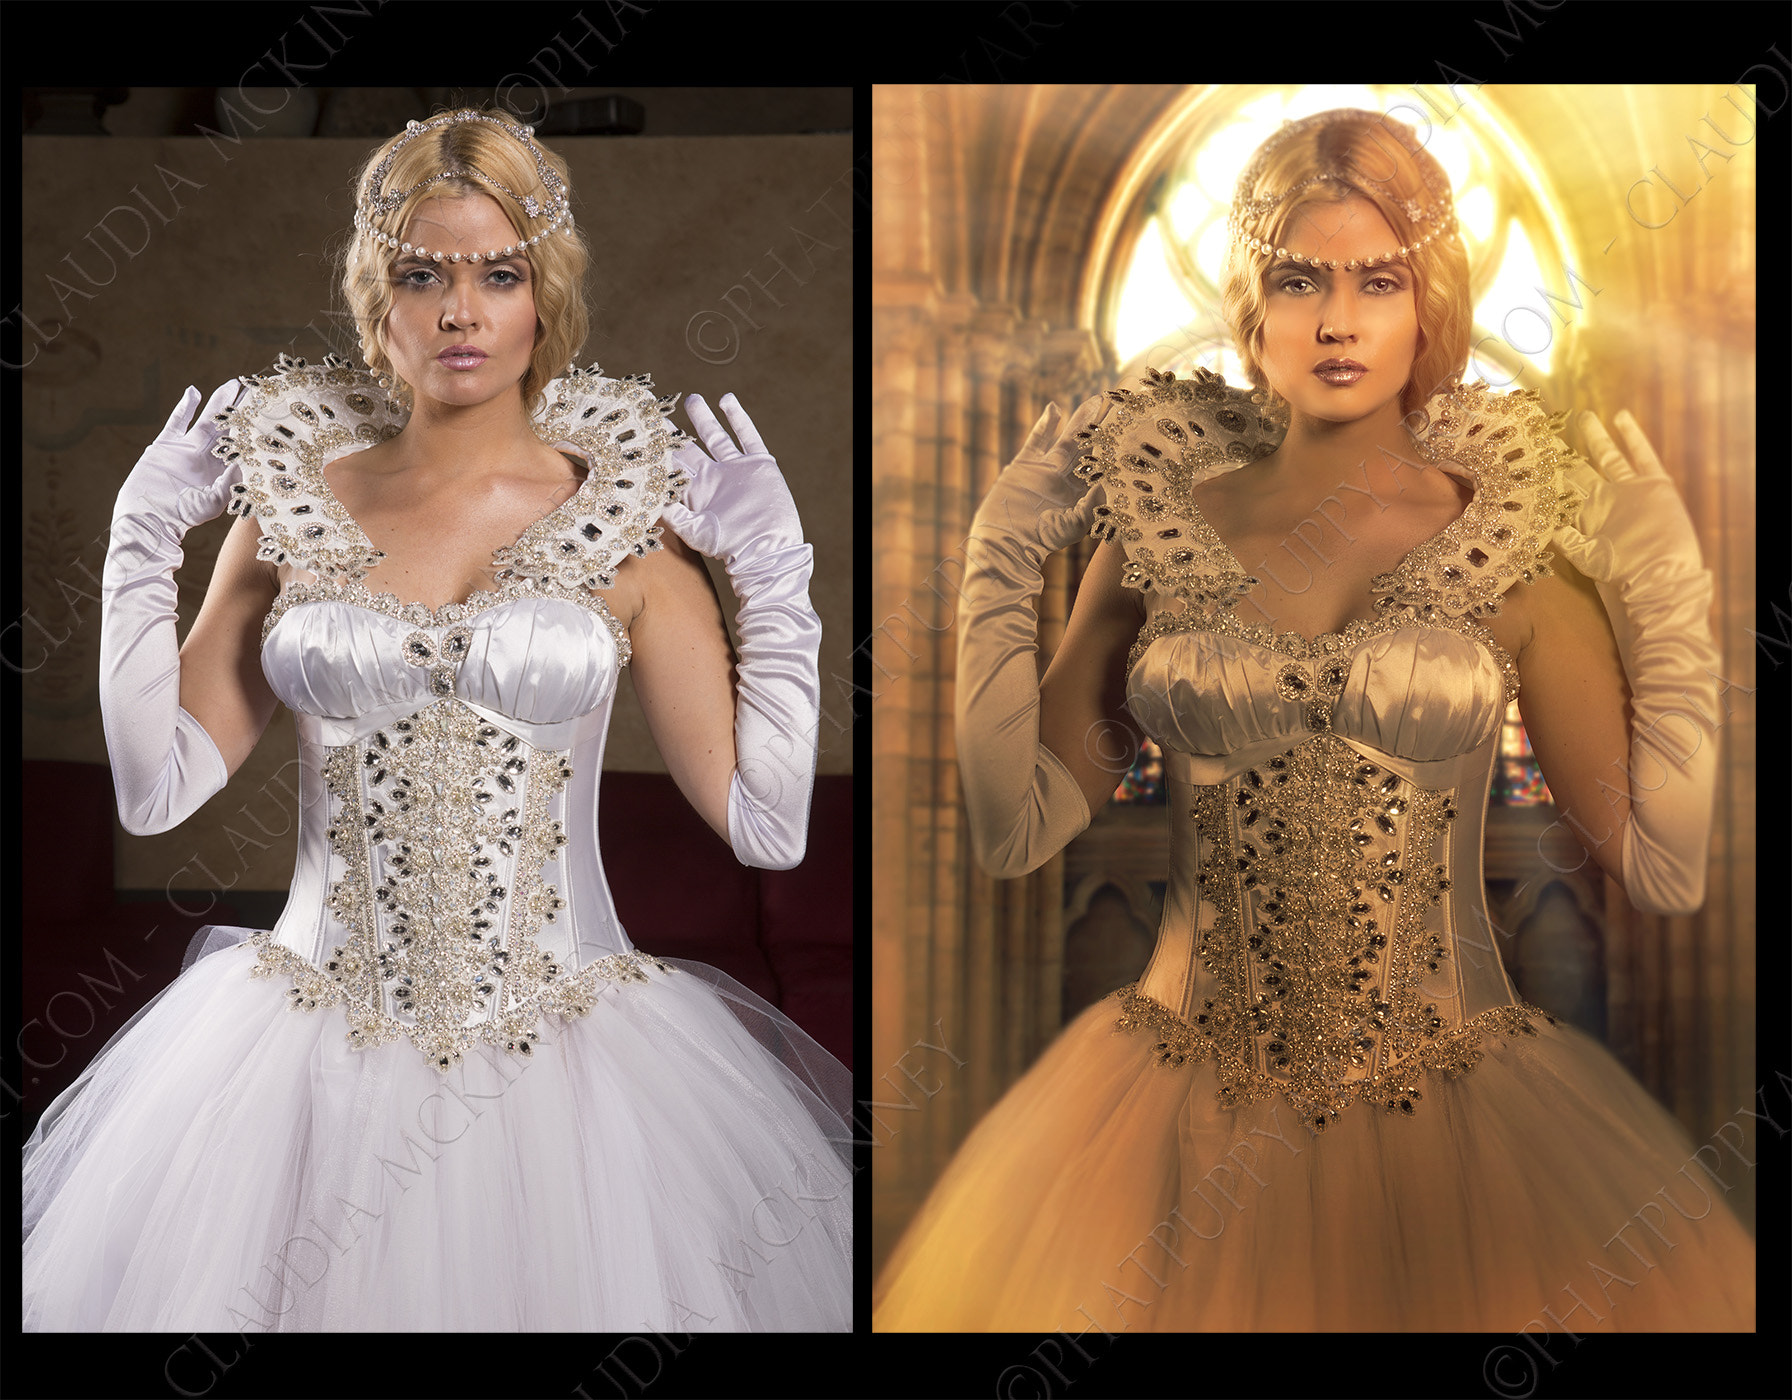 Photograph Before and After Cersei by Phatpuppy Art on 500px